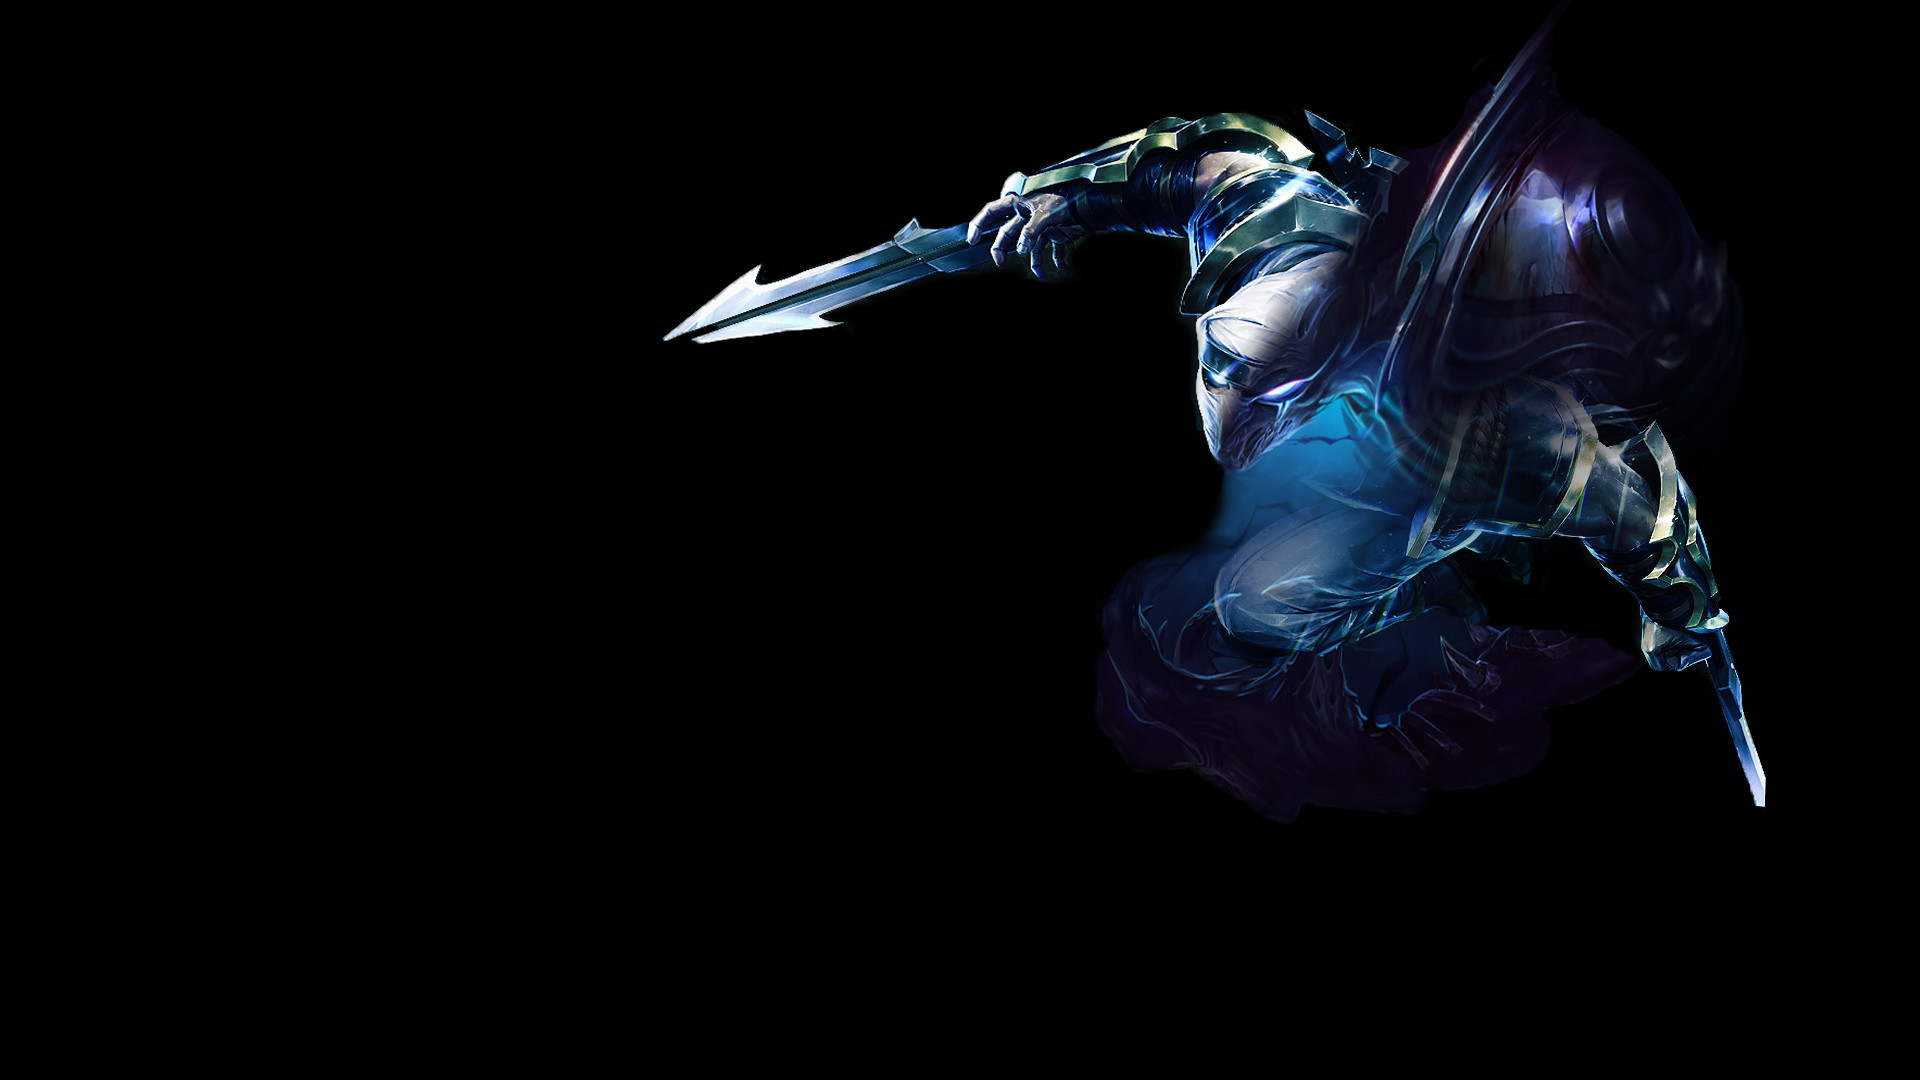 zed background